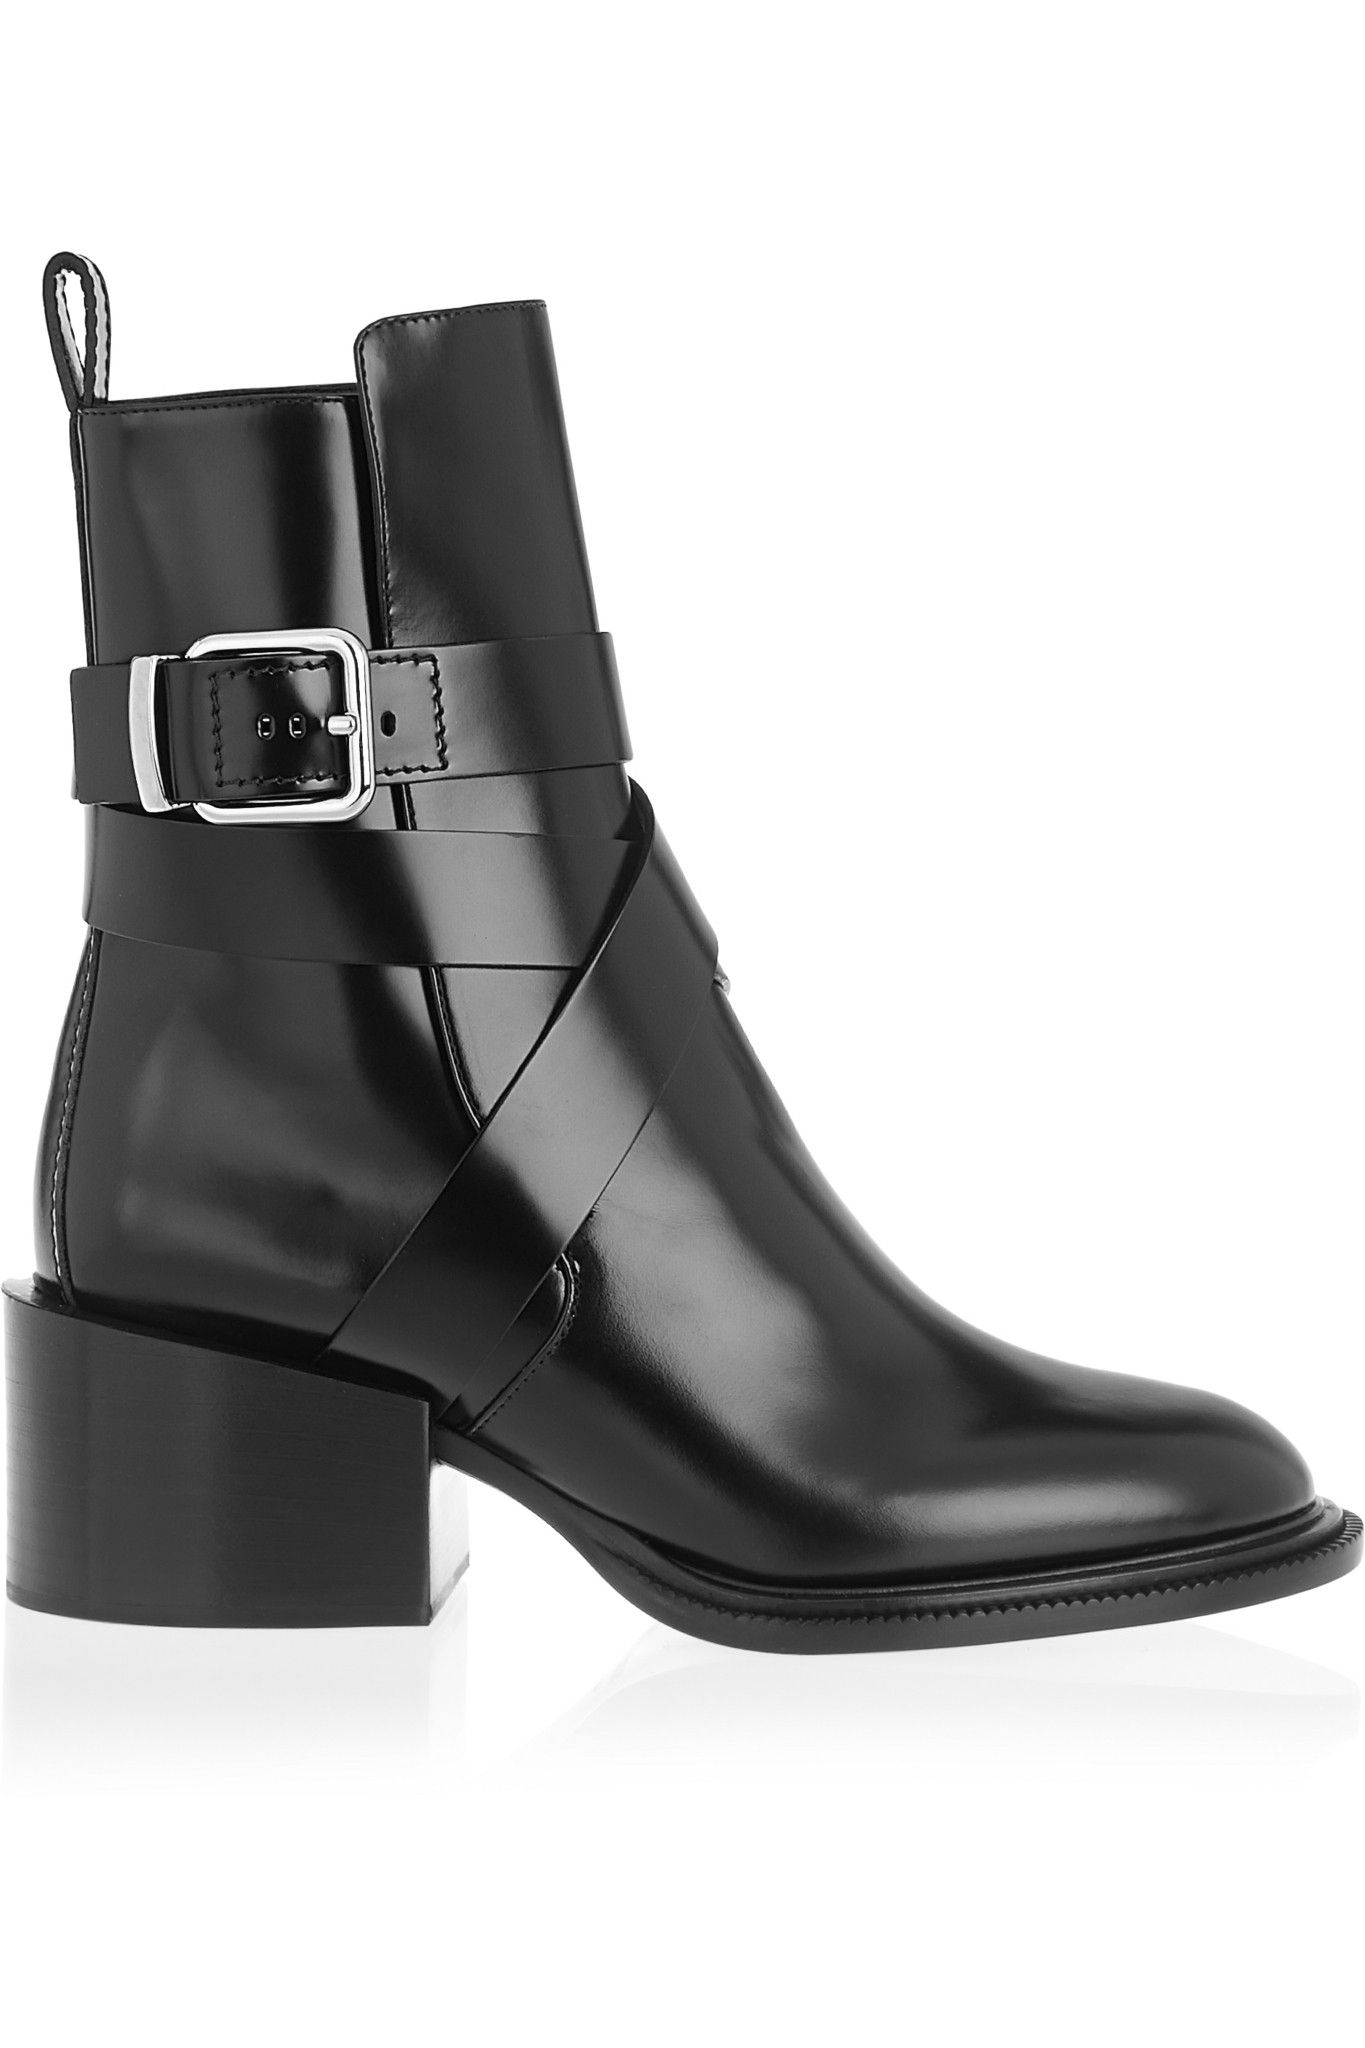 Glossed-leather Ankle Boots - Black Jil Sander 2WbsY5mQL